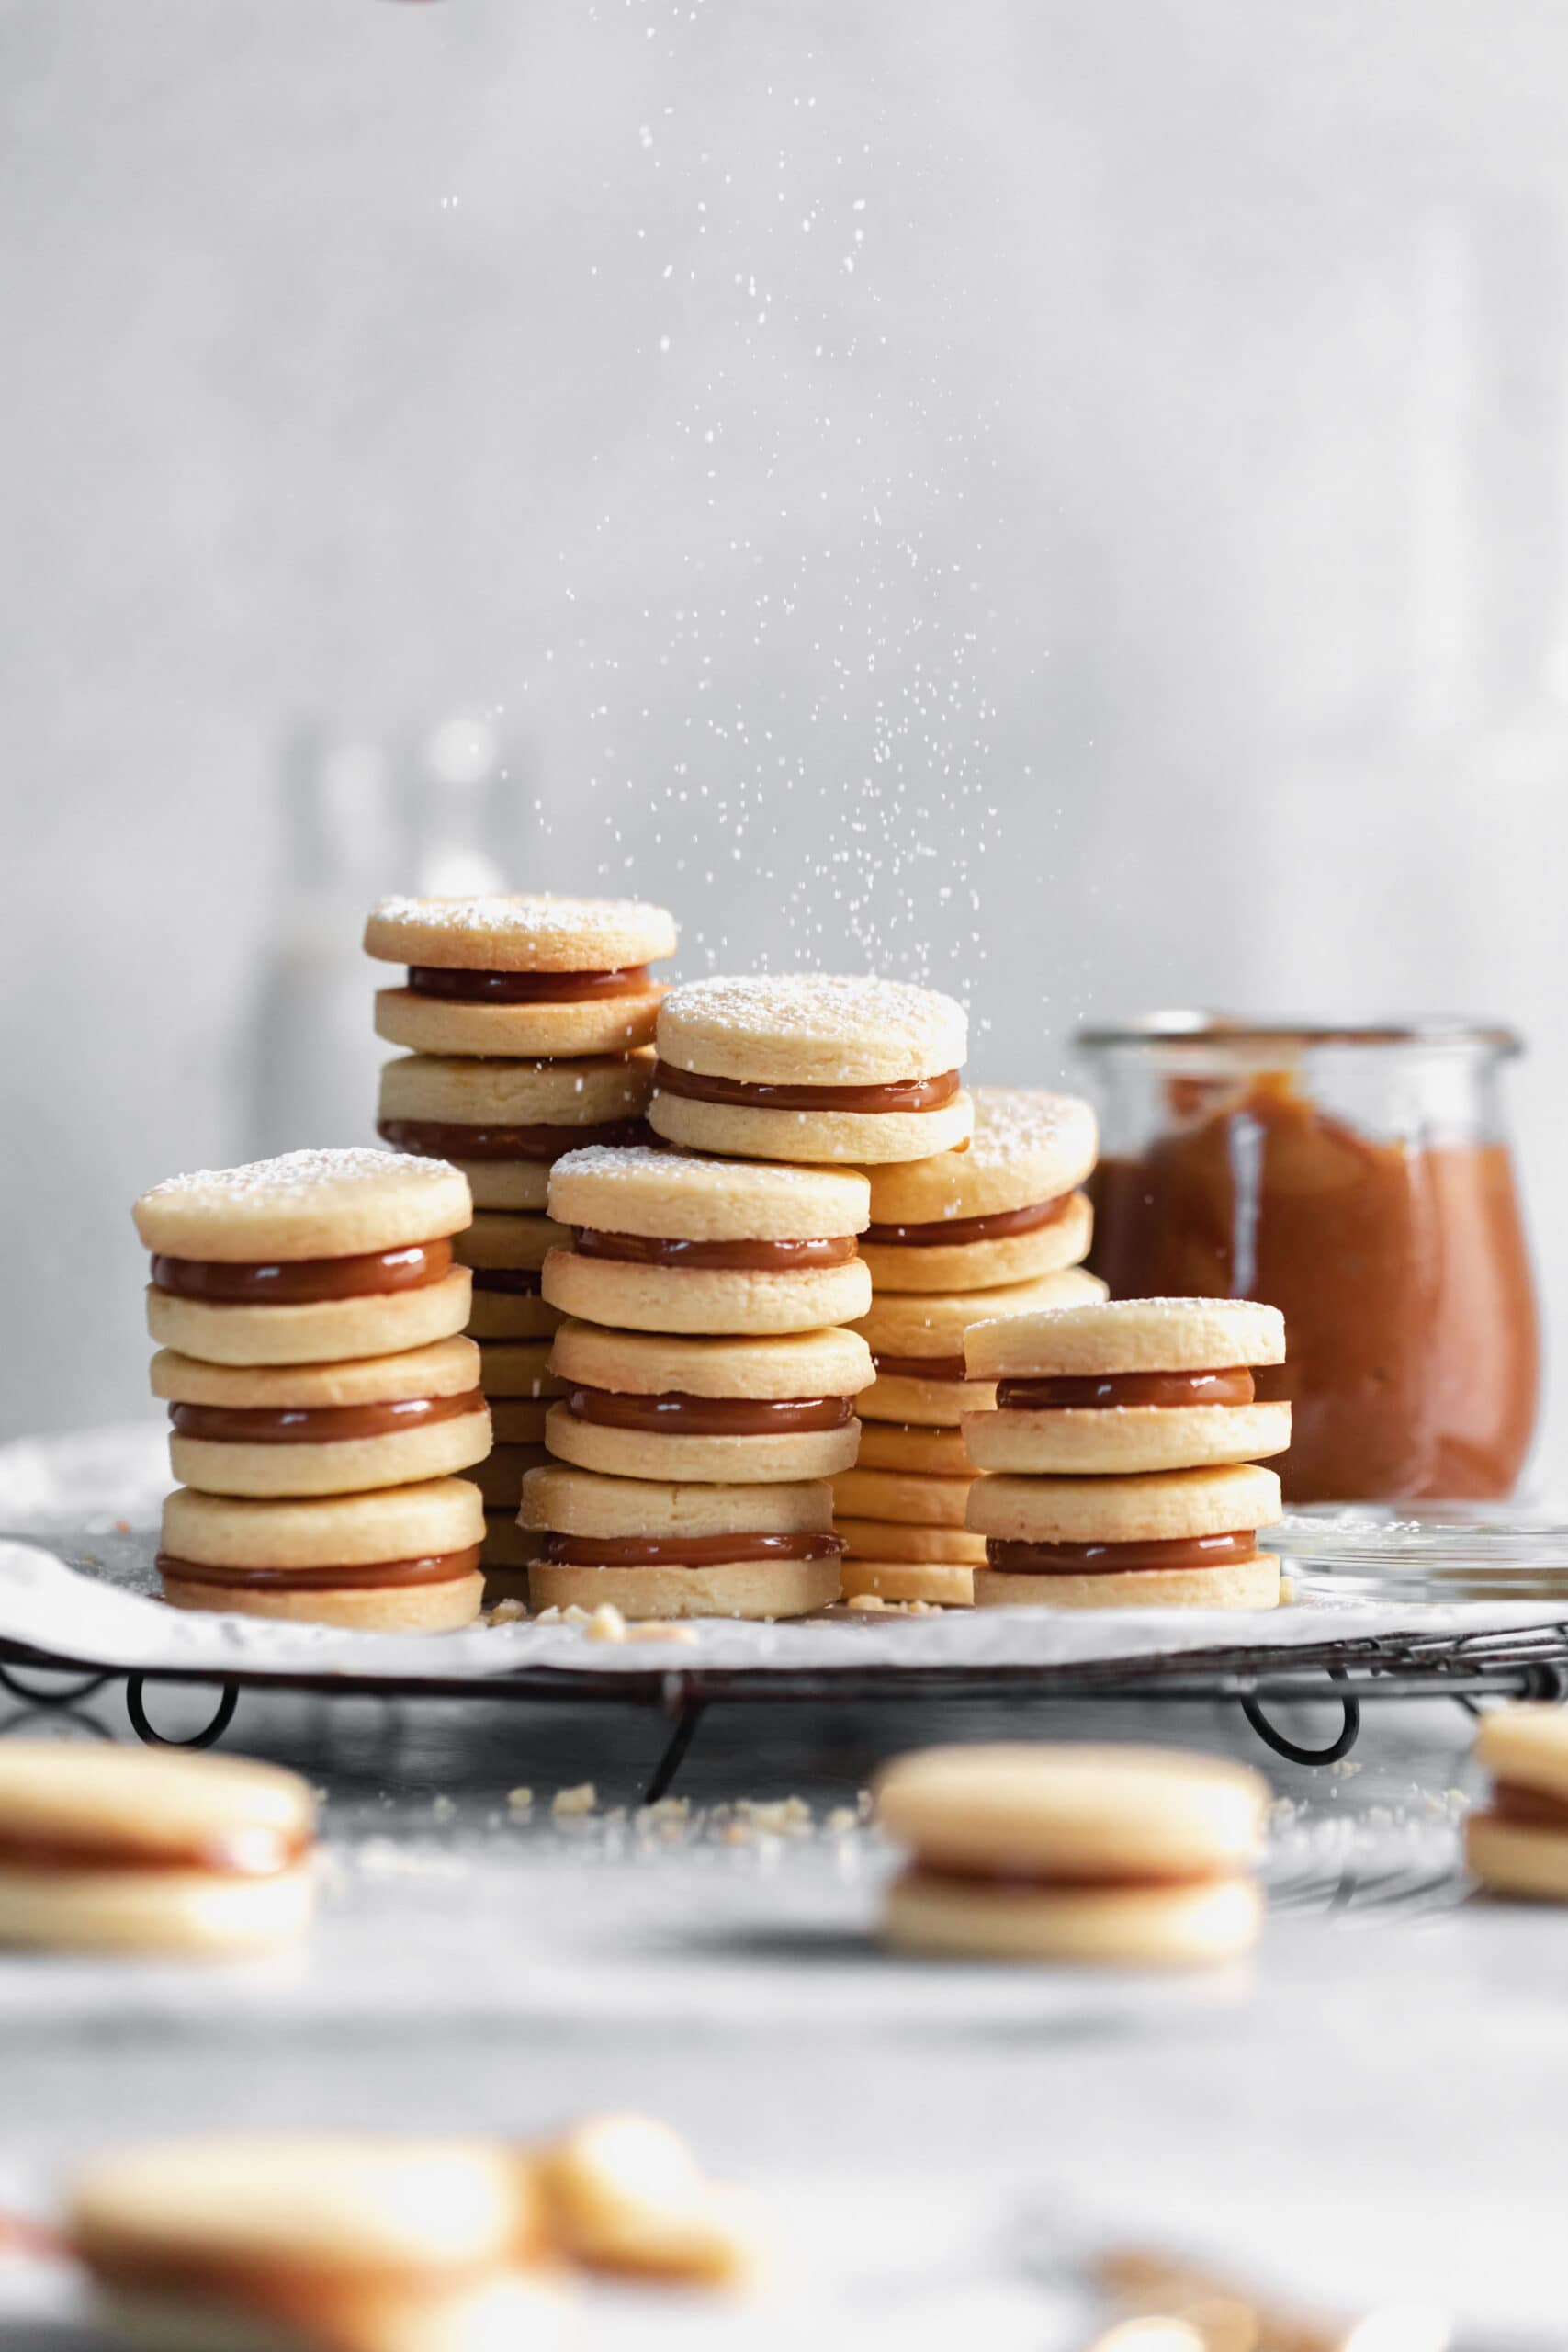 stacks of dulce de leche sandwich cookies